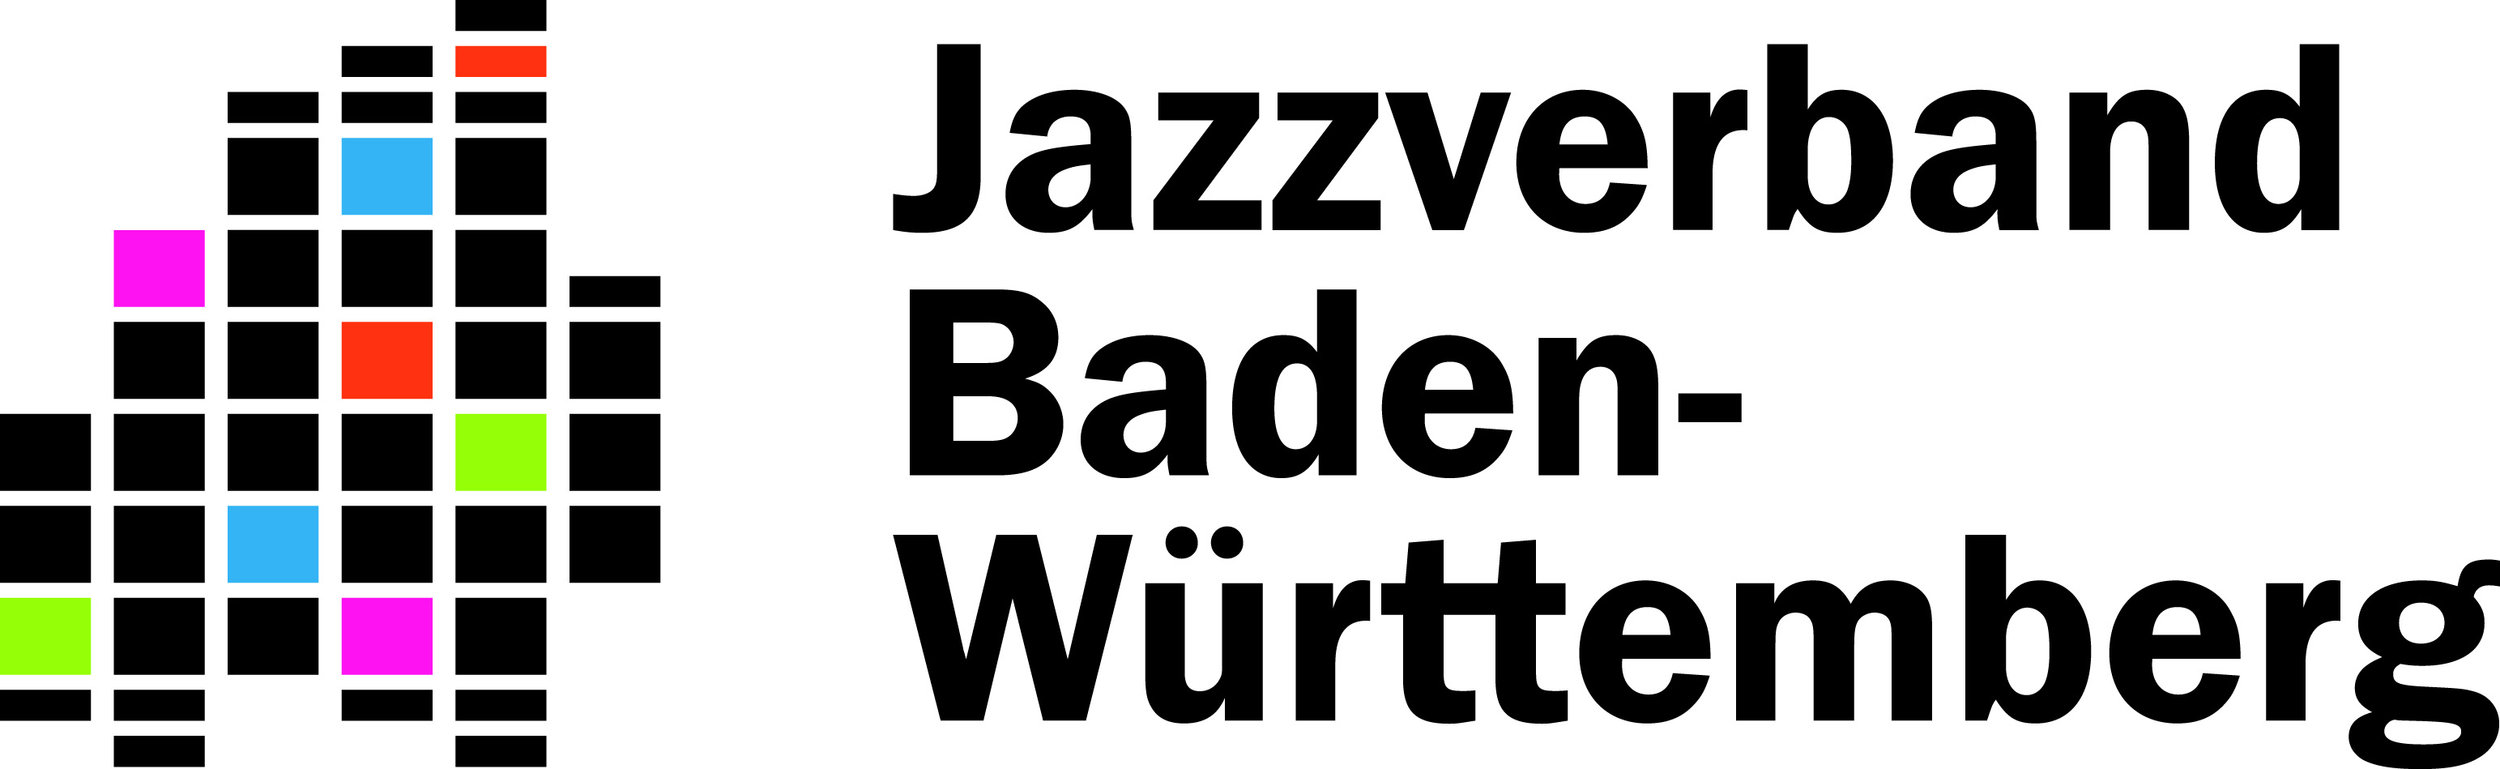 logo_jazzverband_final.jpg